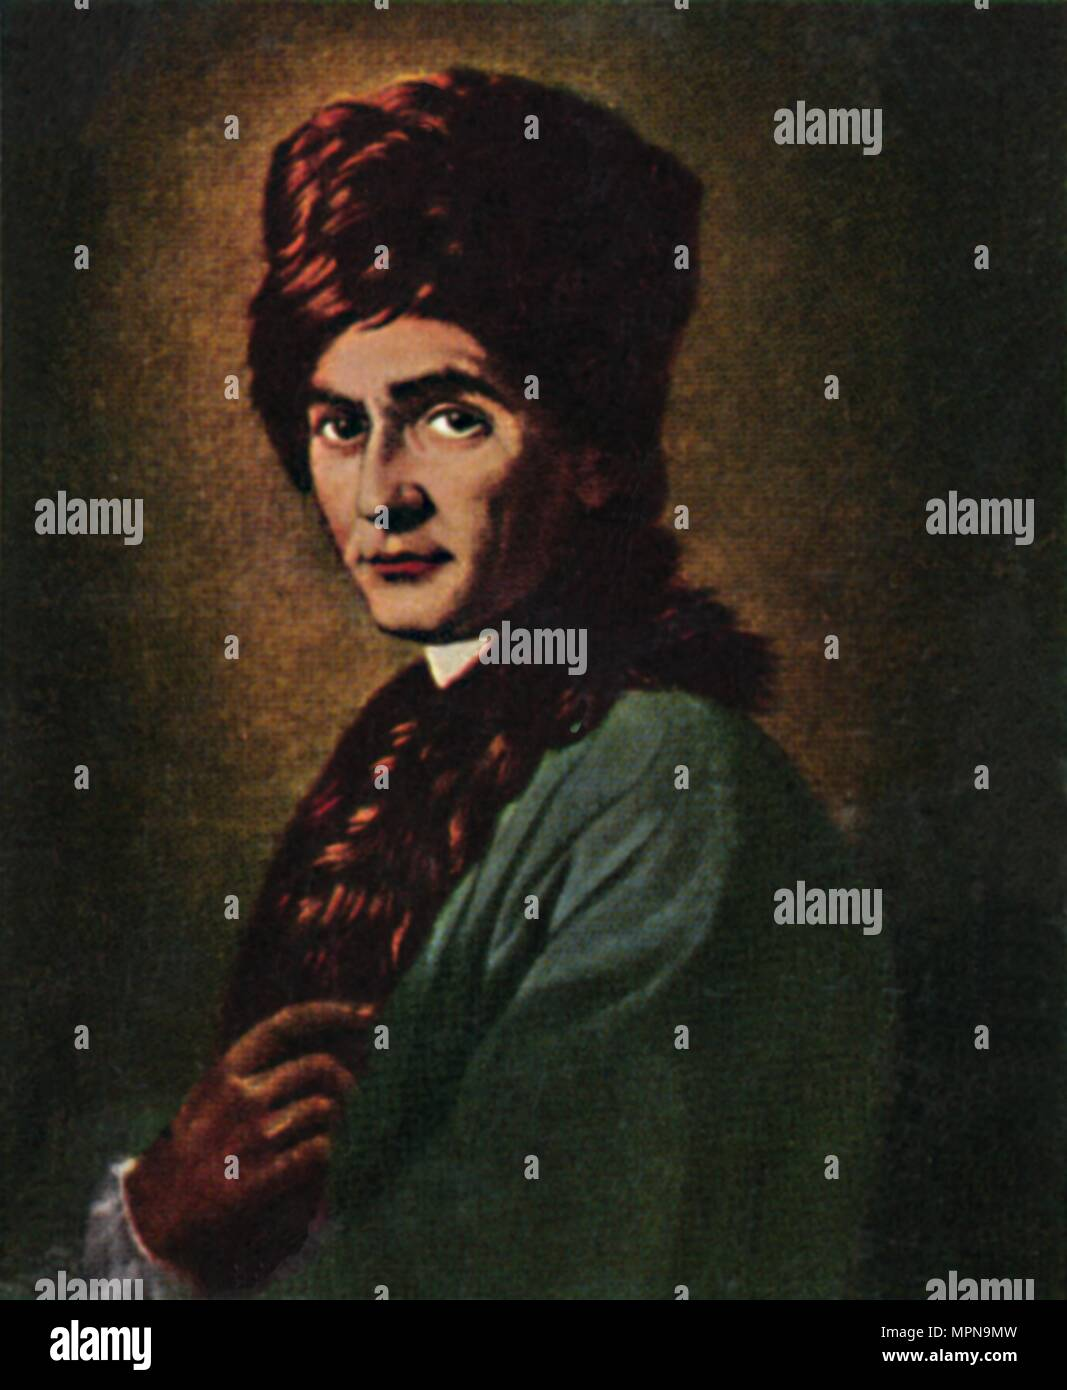 'Jean Jacques Rousseau 1712-1778', 1934. Artist: Unknown. - Stock Image